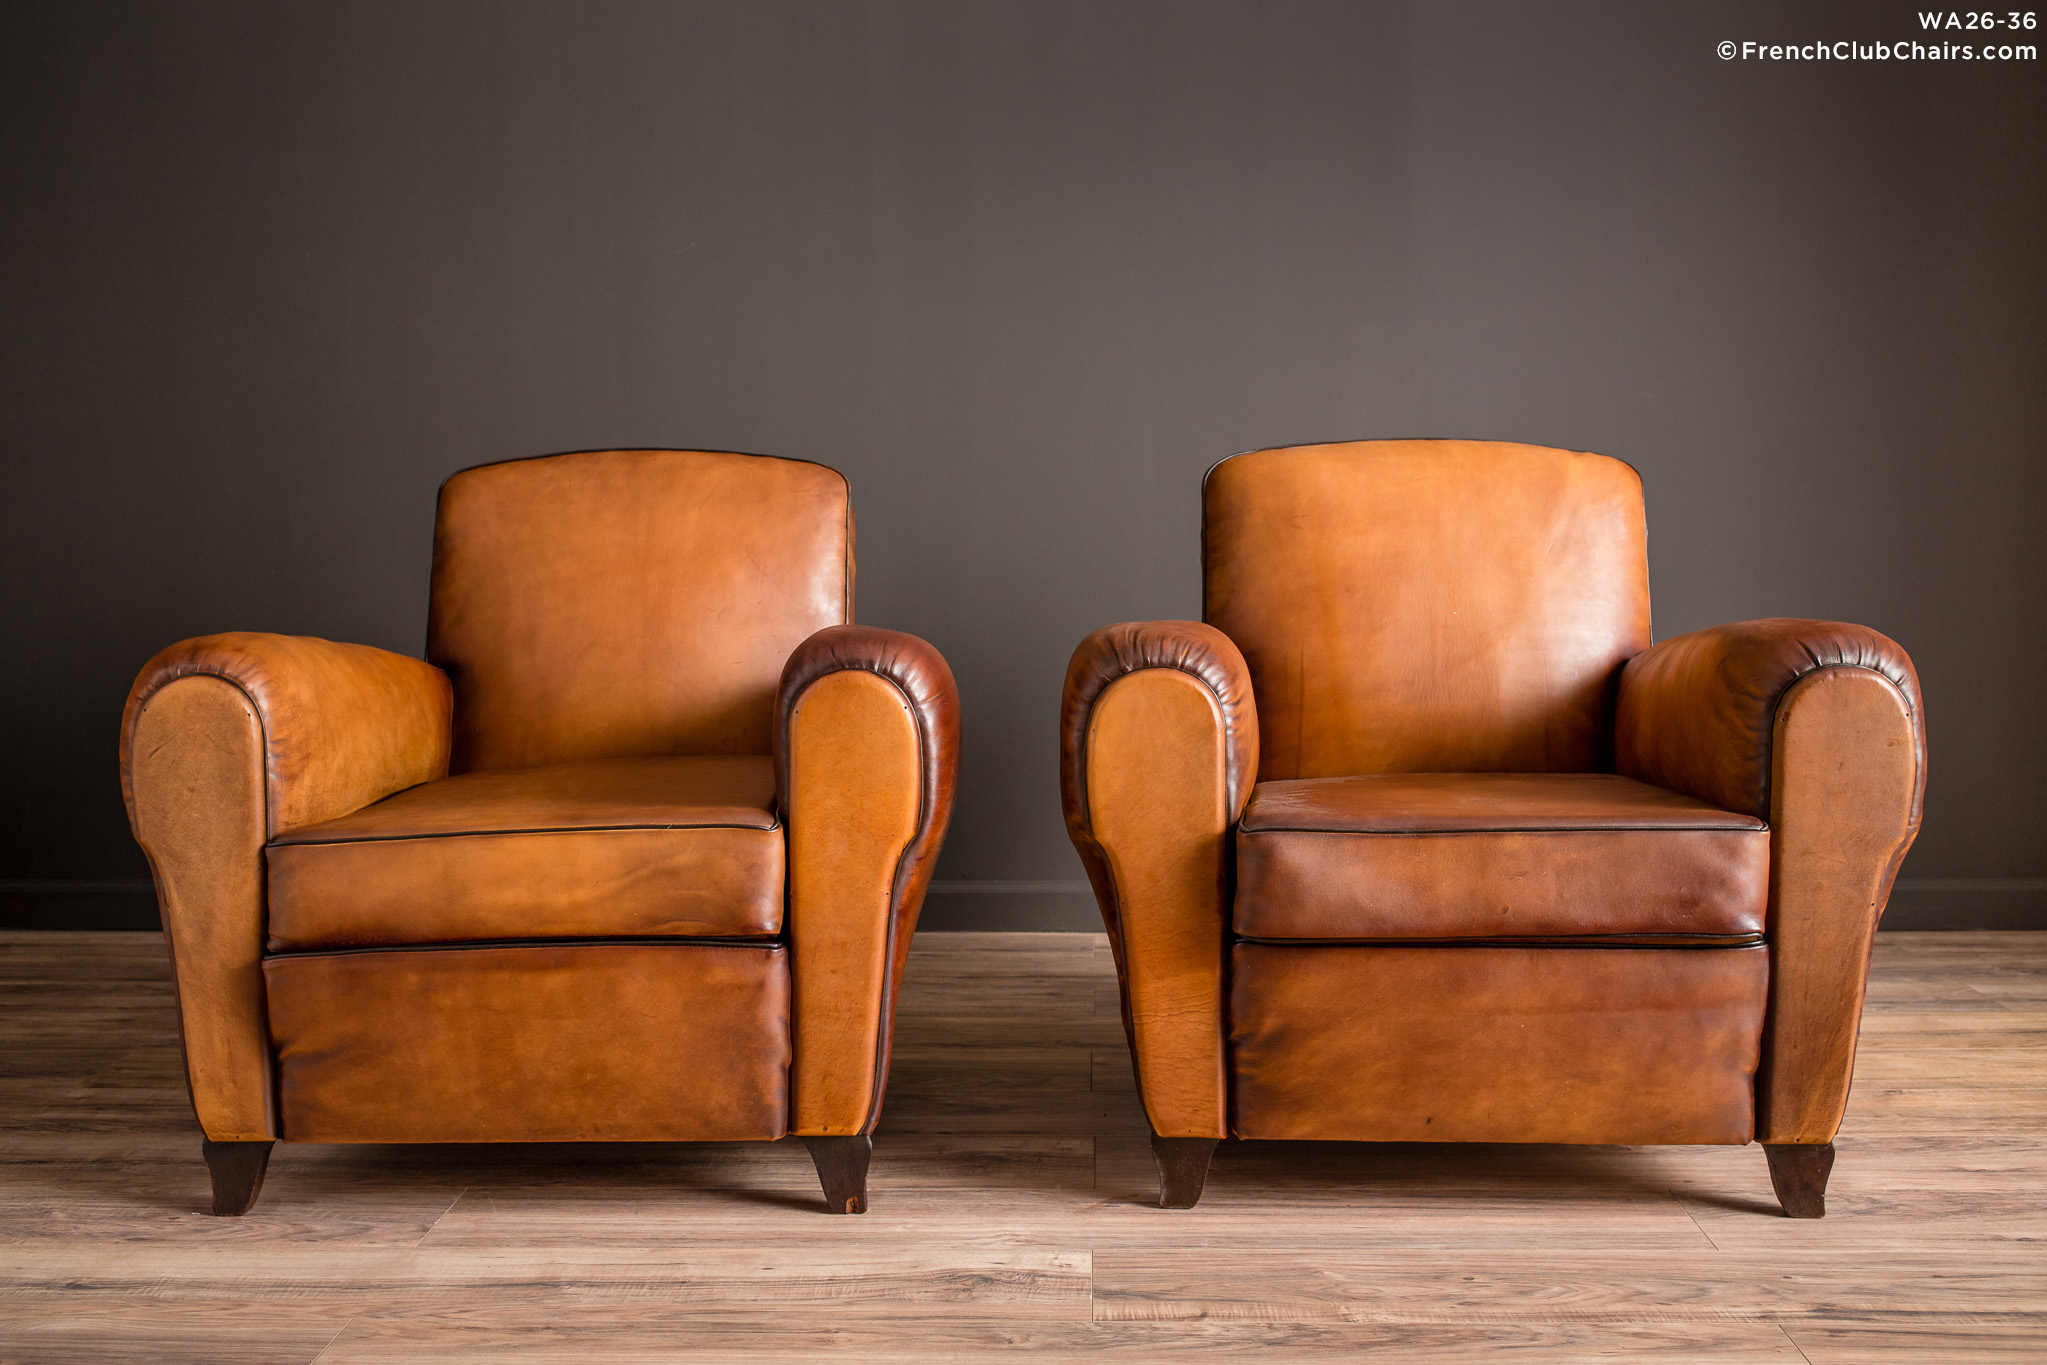 WA_26-36_Valerie_Library_Pair_R_1TQ-v01-williams-antiks-leather-french-club-chair-wa_fcccom